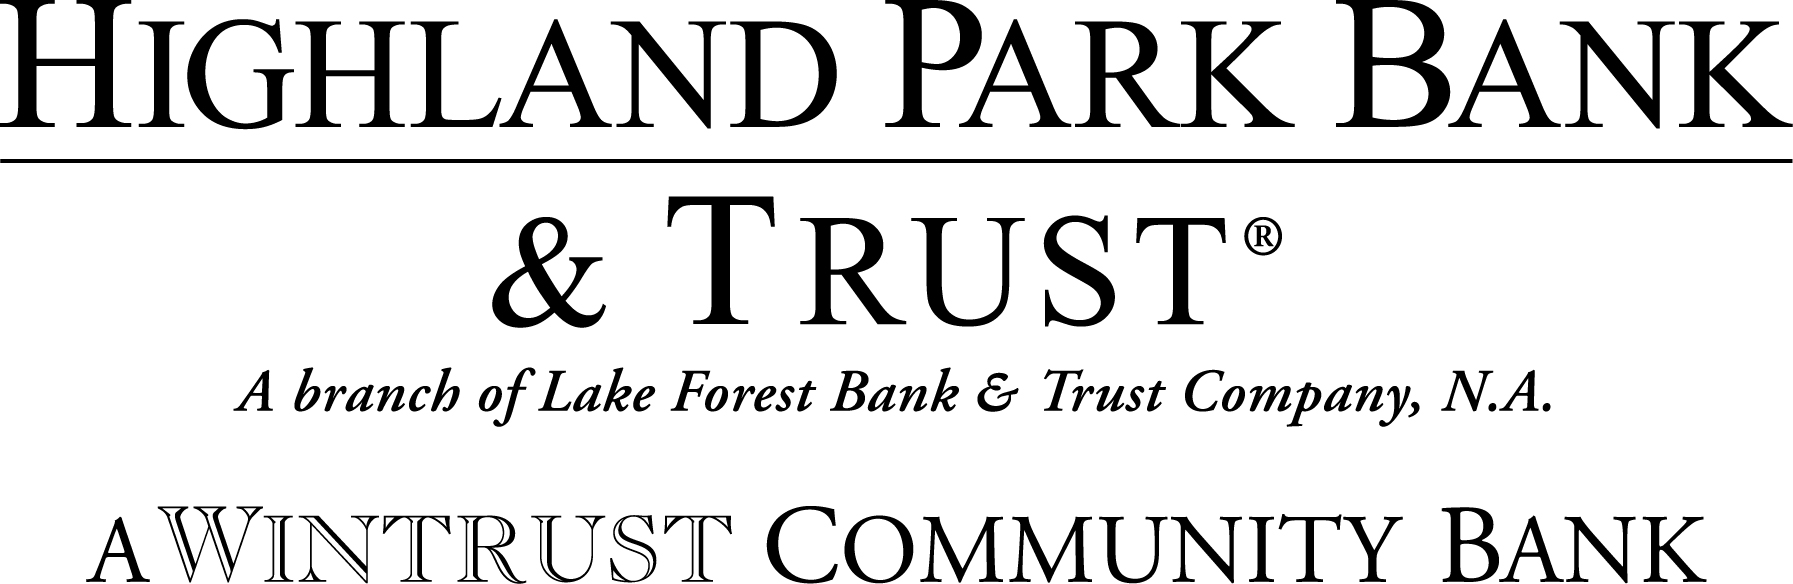 Highland Park Bank and Trust USE